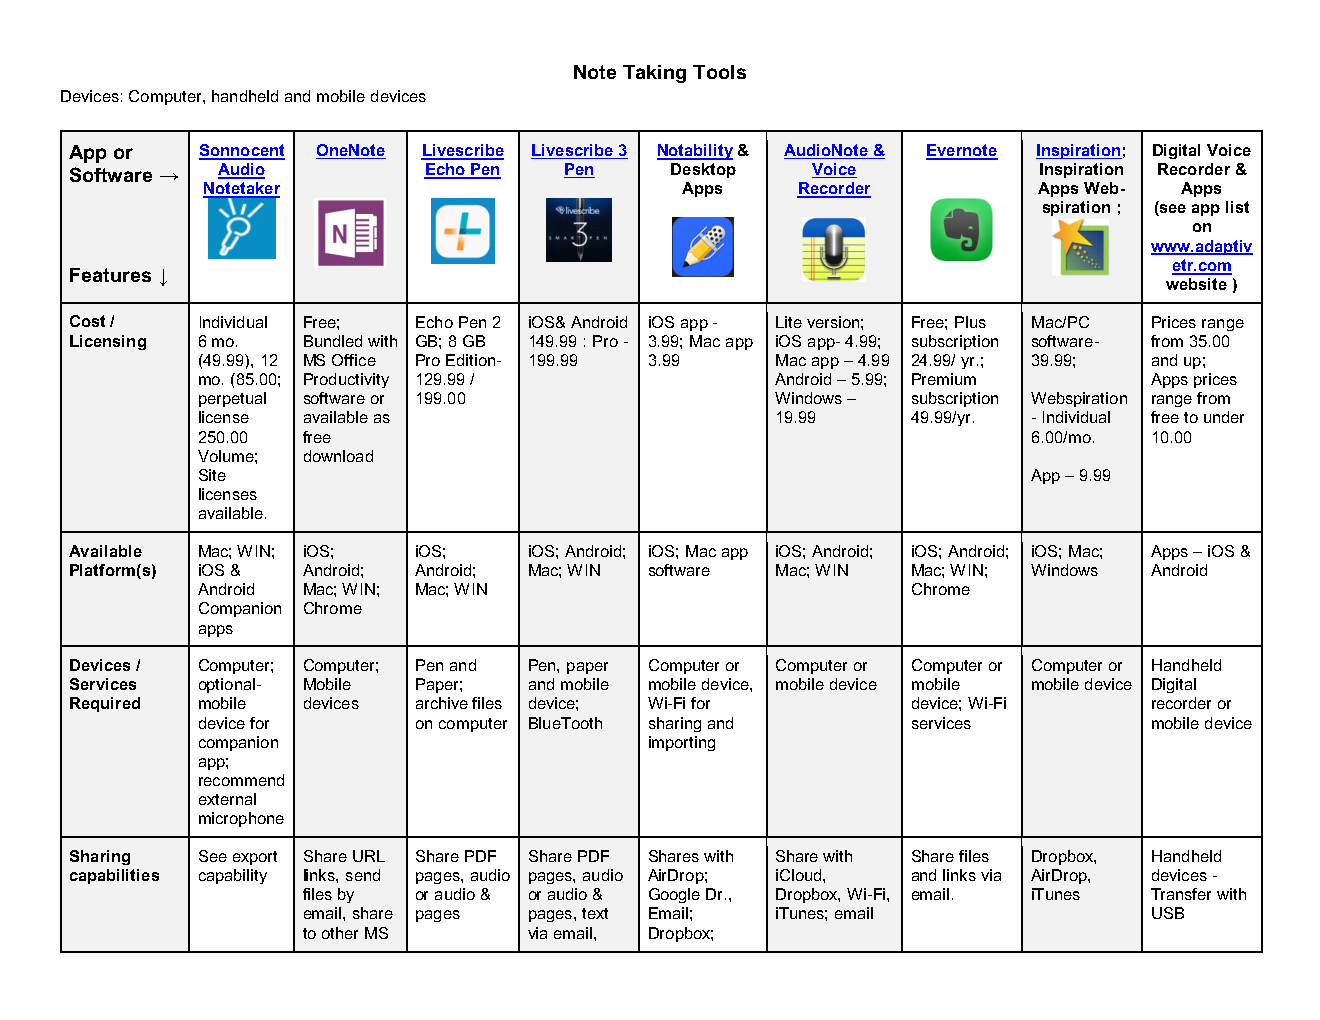 Note Taking Tools & Feature Matrix | OT's with Apps & Technology